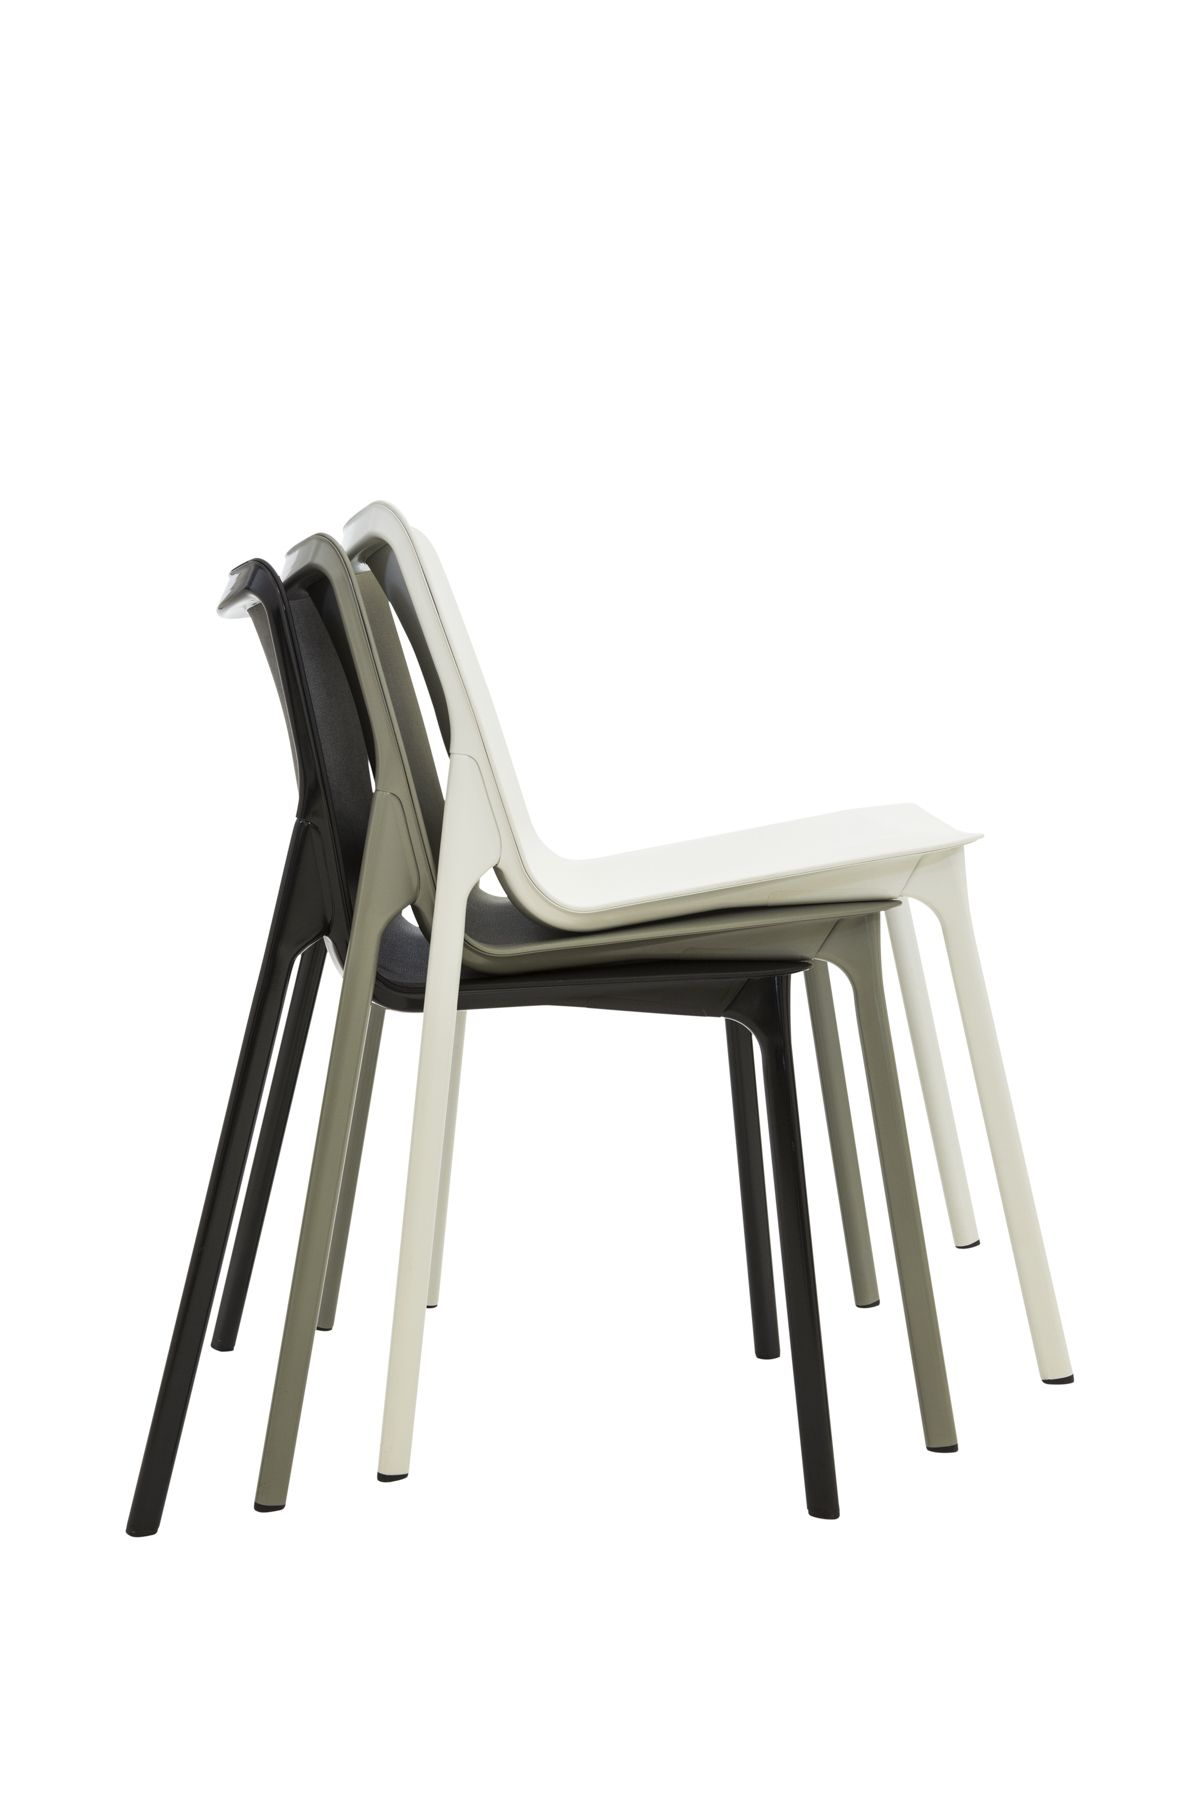 chassis multipurpose chair design stefan diez innovative multi purpose appealing by. Black Bedroom Furniture Sets. Home Design Ideas